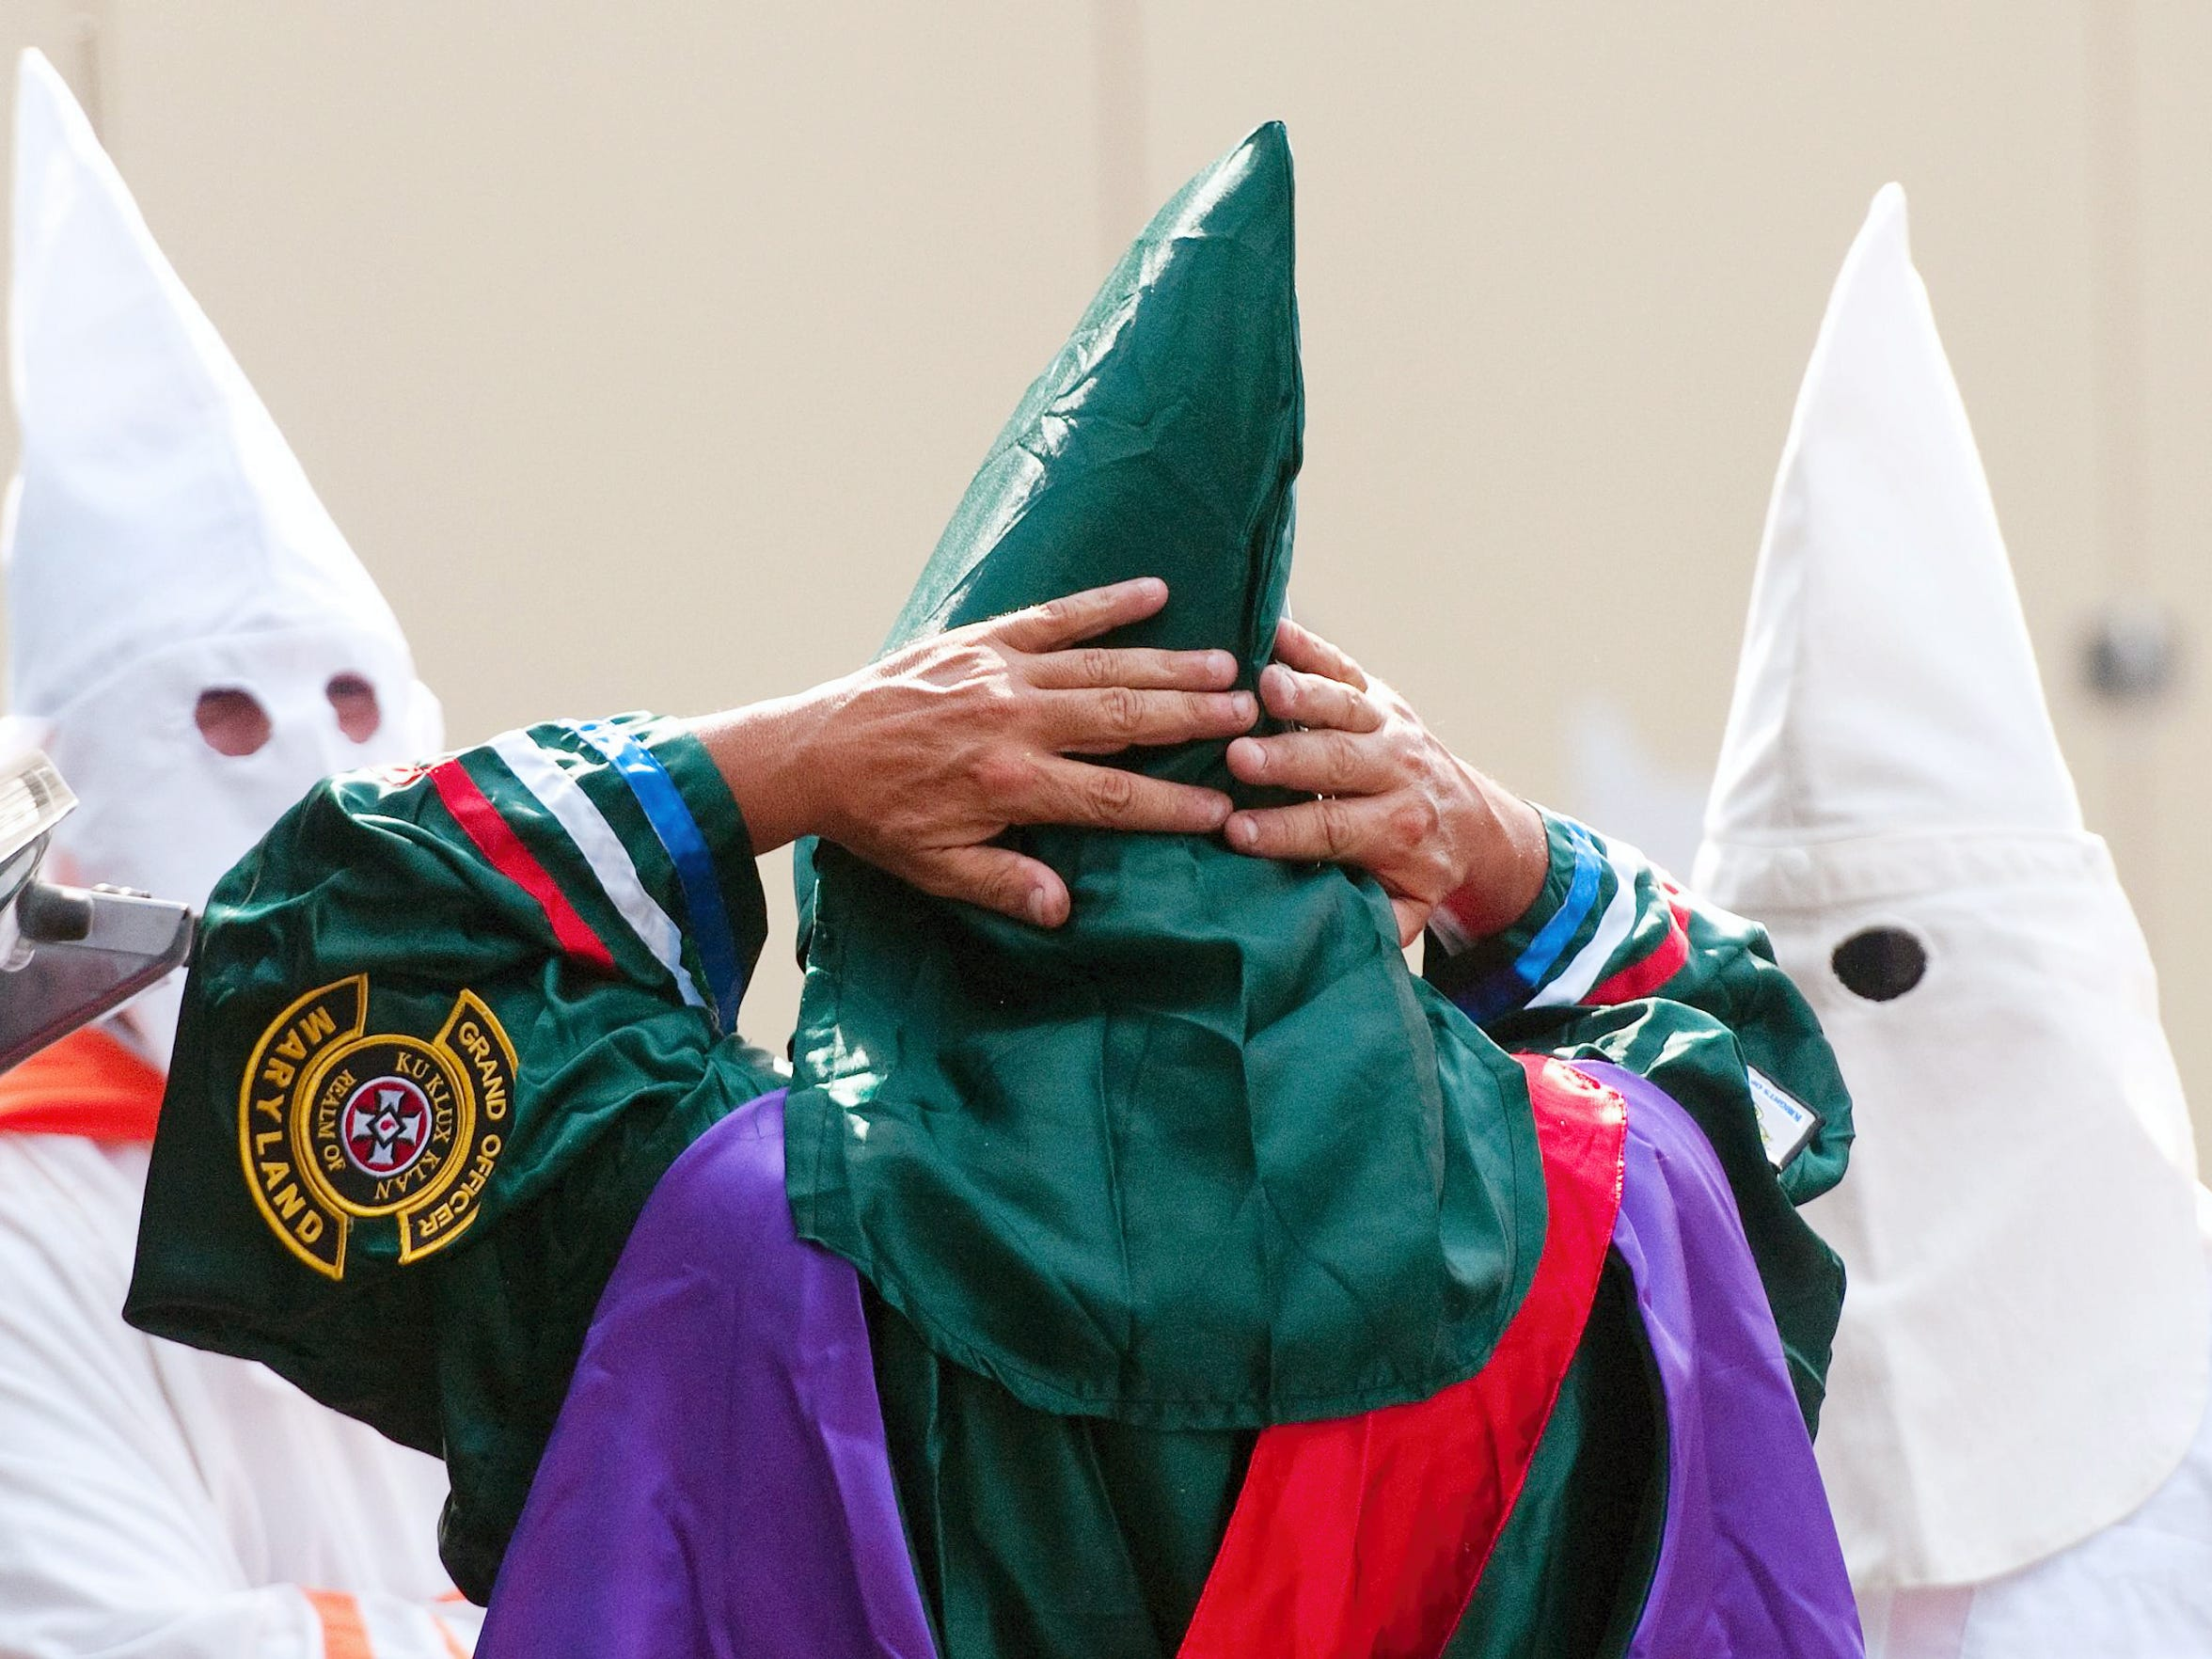 A member of the Confederate White Knights of the Ku Klux Klan who would not identify himself puts on his hood and robe as others look on after arriving outside the borough office in Gettysburg, Pa., Saturday, Oct. 5, 2013. The group previously requested a permit to demonstrate at Gettysburg National Military Park, but that permit was revoked as a result of the federal government shutdown.